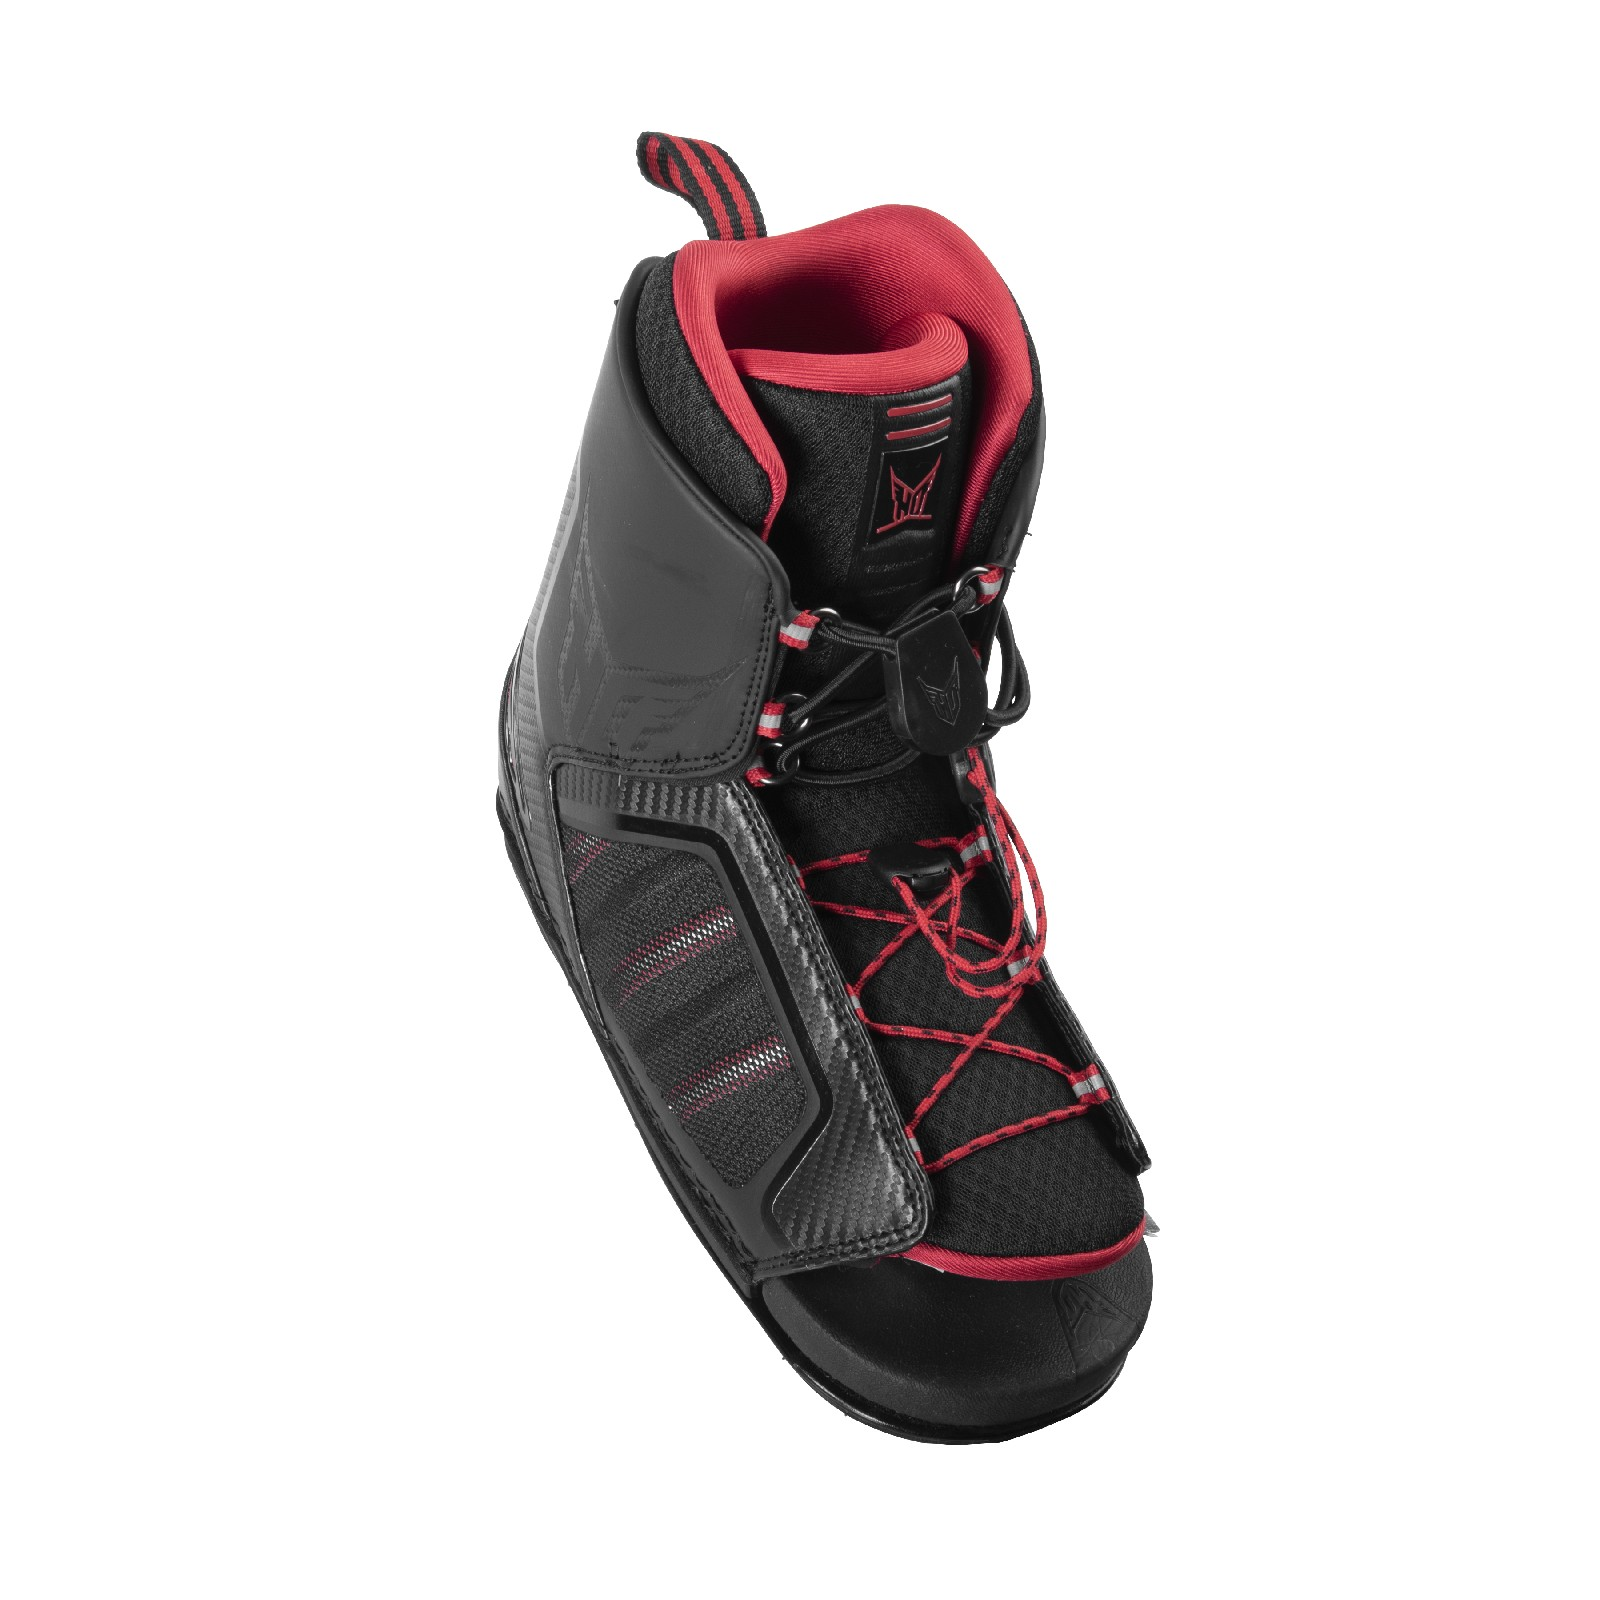 XMAX BOOT DIRECT CONNECT HO SPORTS 2019